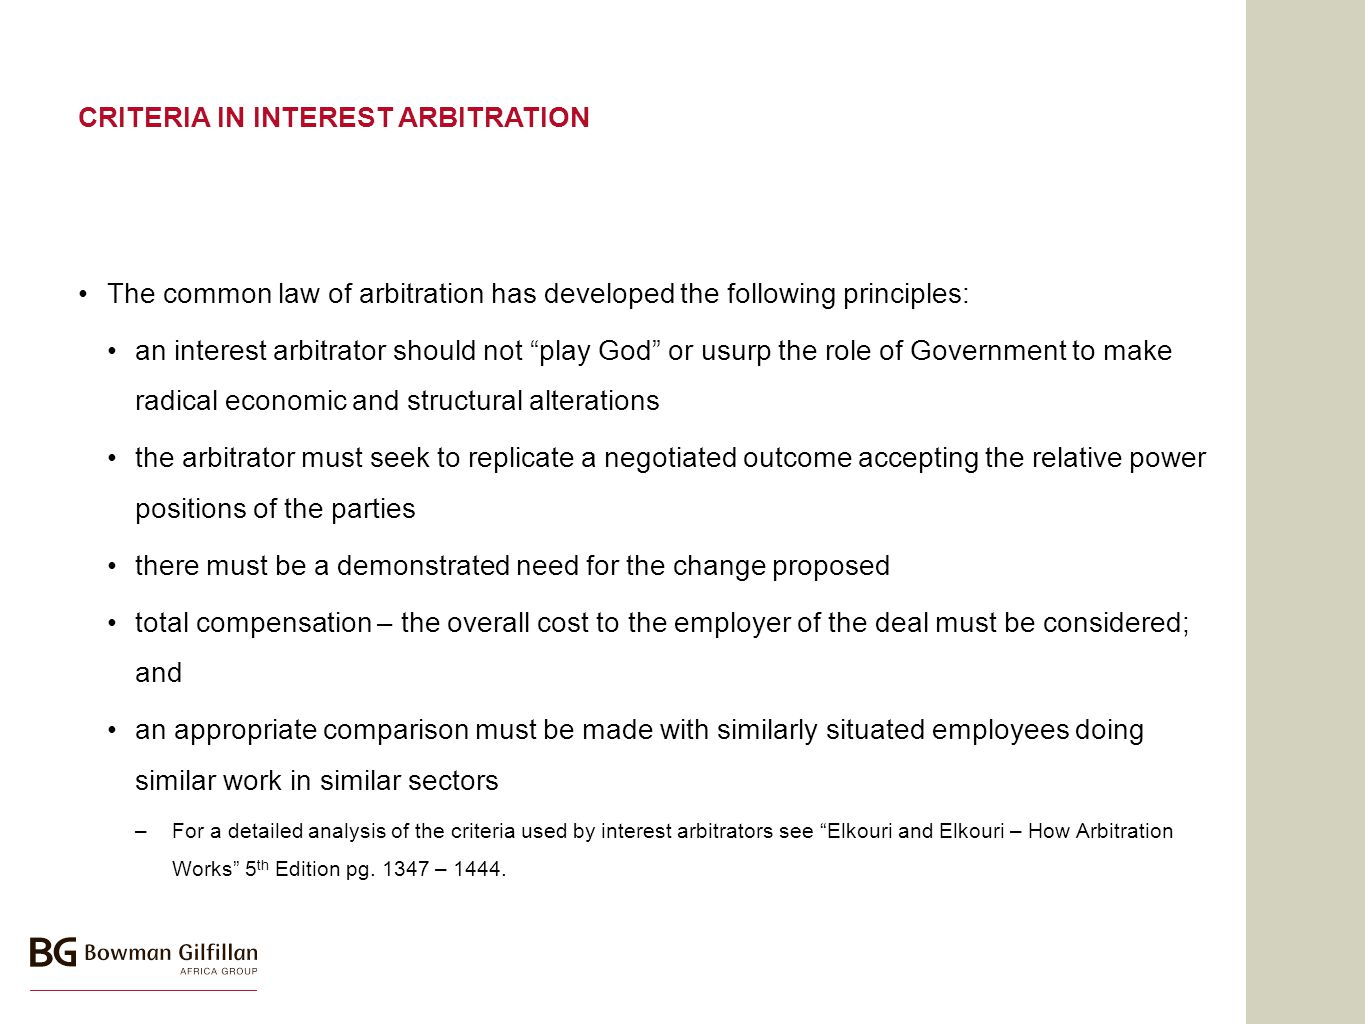 CRITERIA IN INTEREST ARBITRATION The common law of arbitration has developed the following principles: an interest arbitrator should not play God or usurp the role of Government to make radical economic and structural alterations the arbitrator must seek to replicate a negotiated outcome accepting the relative power positions of the parties there must be a demonstrated need for the change proposed total compensation – the overall cost to the employer of the deal must be considered; and an appropriate comparison must be made with similarly situated employees doing similar work in similar sectors –For a detailed analysis of the criteria used by interest arbitrators see Elkouri and Elkouri – How Arbitration Works 5 th Edition pg.